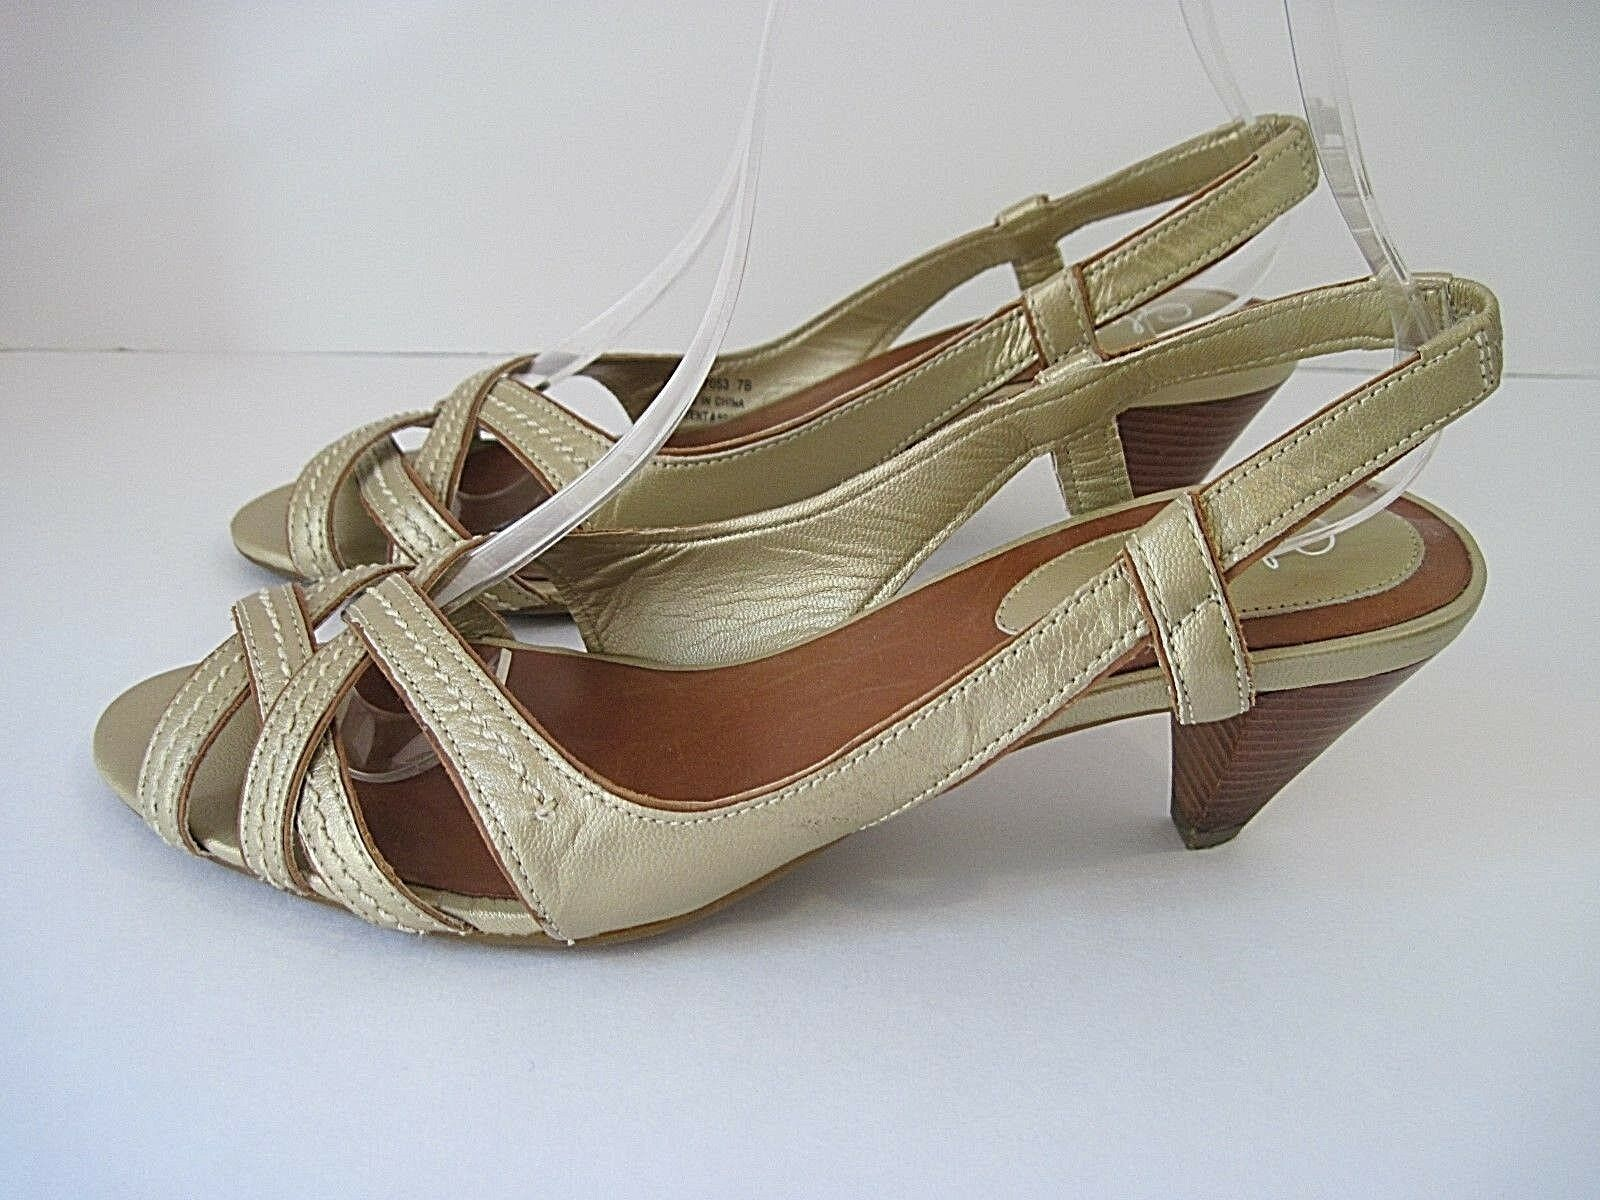 Cole Haan Womens gold Leather  Strappy Heels Sandals Open Toe Sling Backs Sz 7B